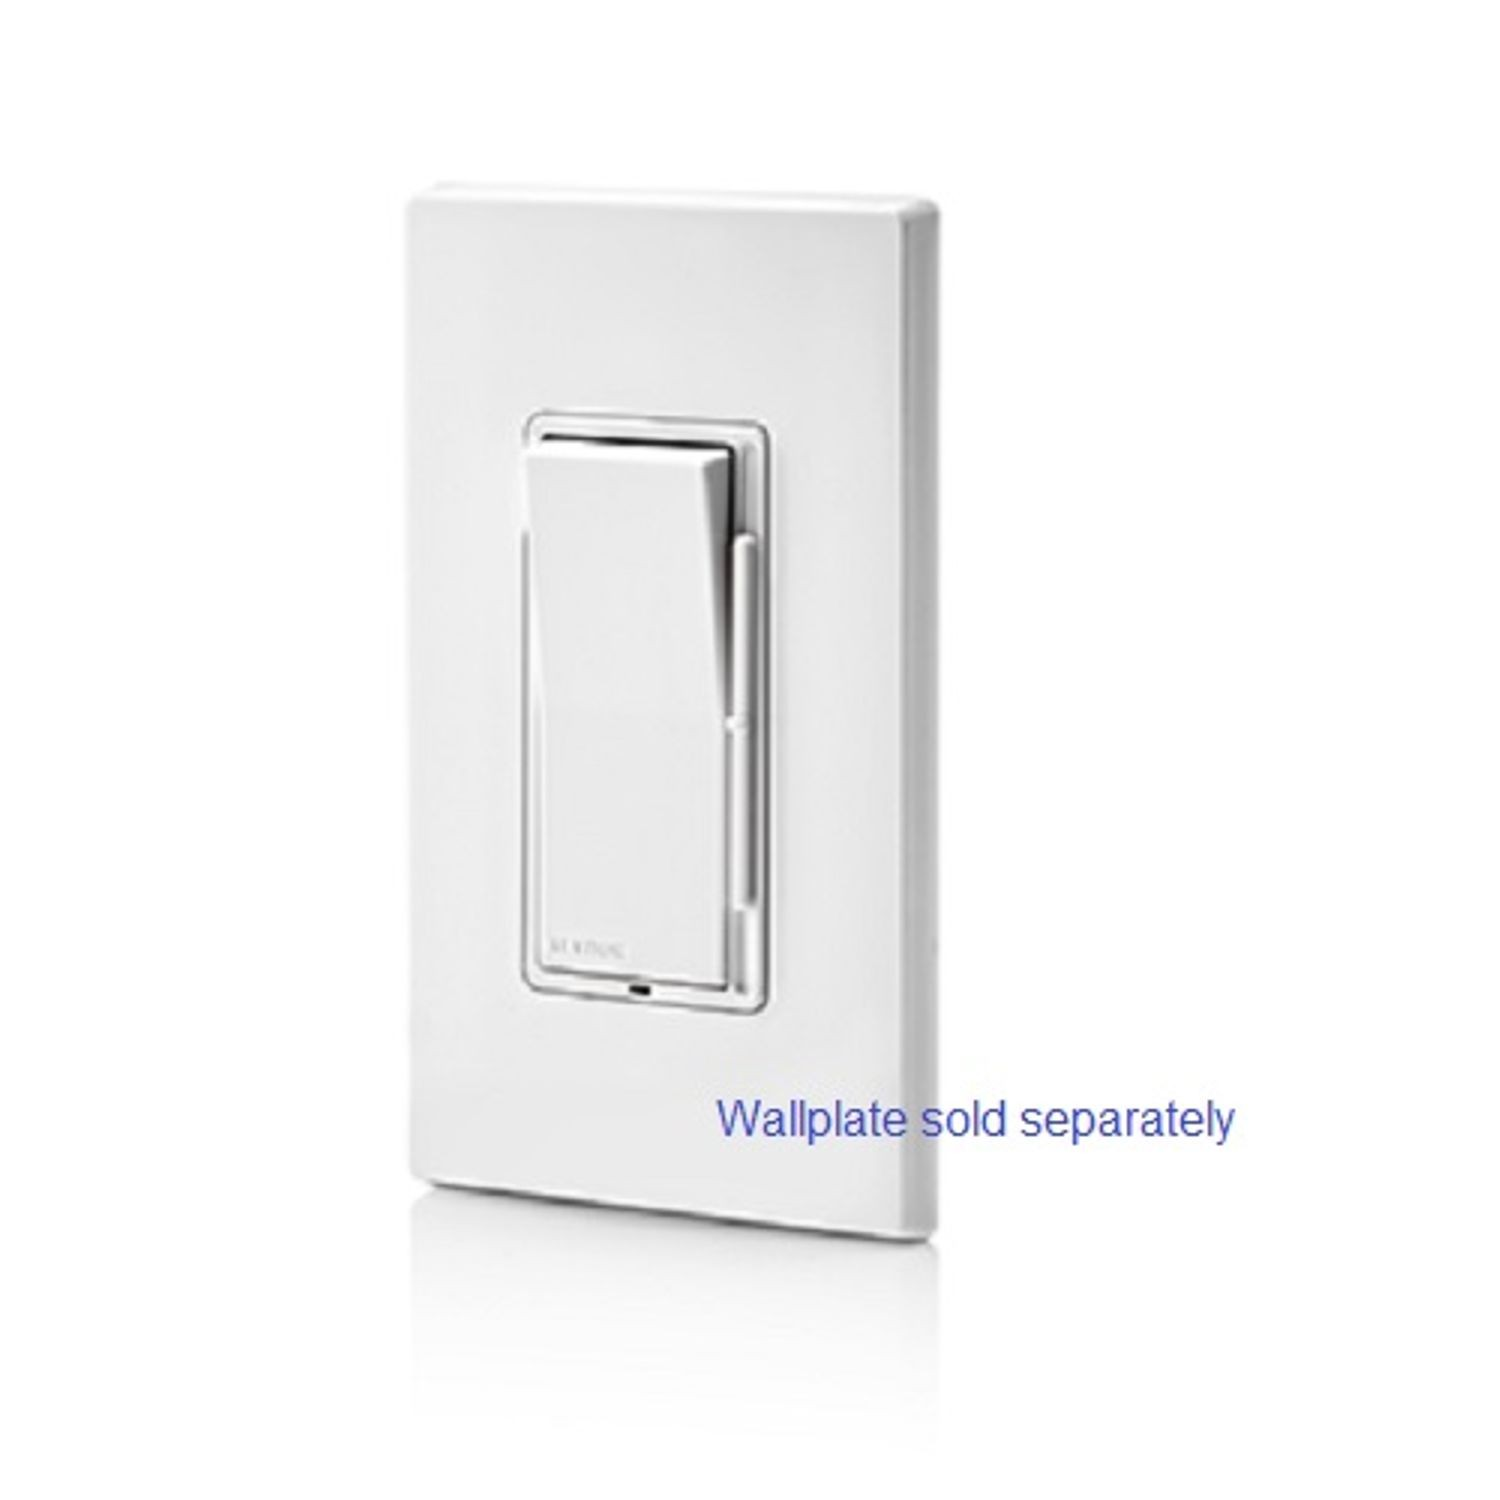 Decora Dsl06 1lz 3 Way Universal Dimmer Switch With Locator Light Plate 120 Vac Poles White Ivory Almond